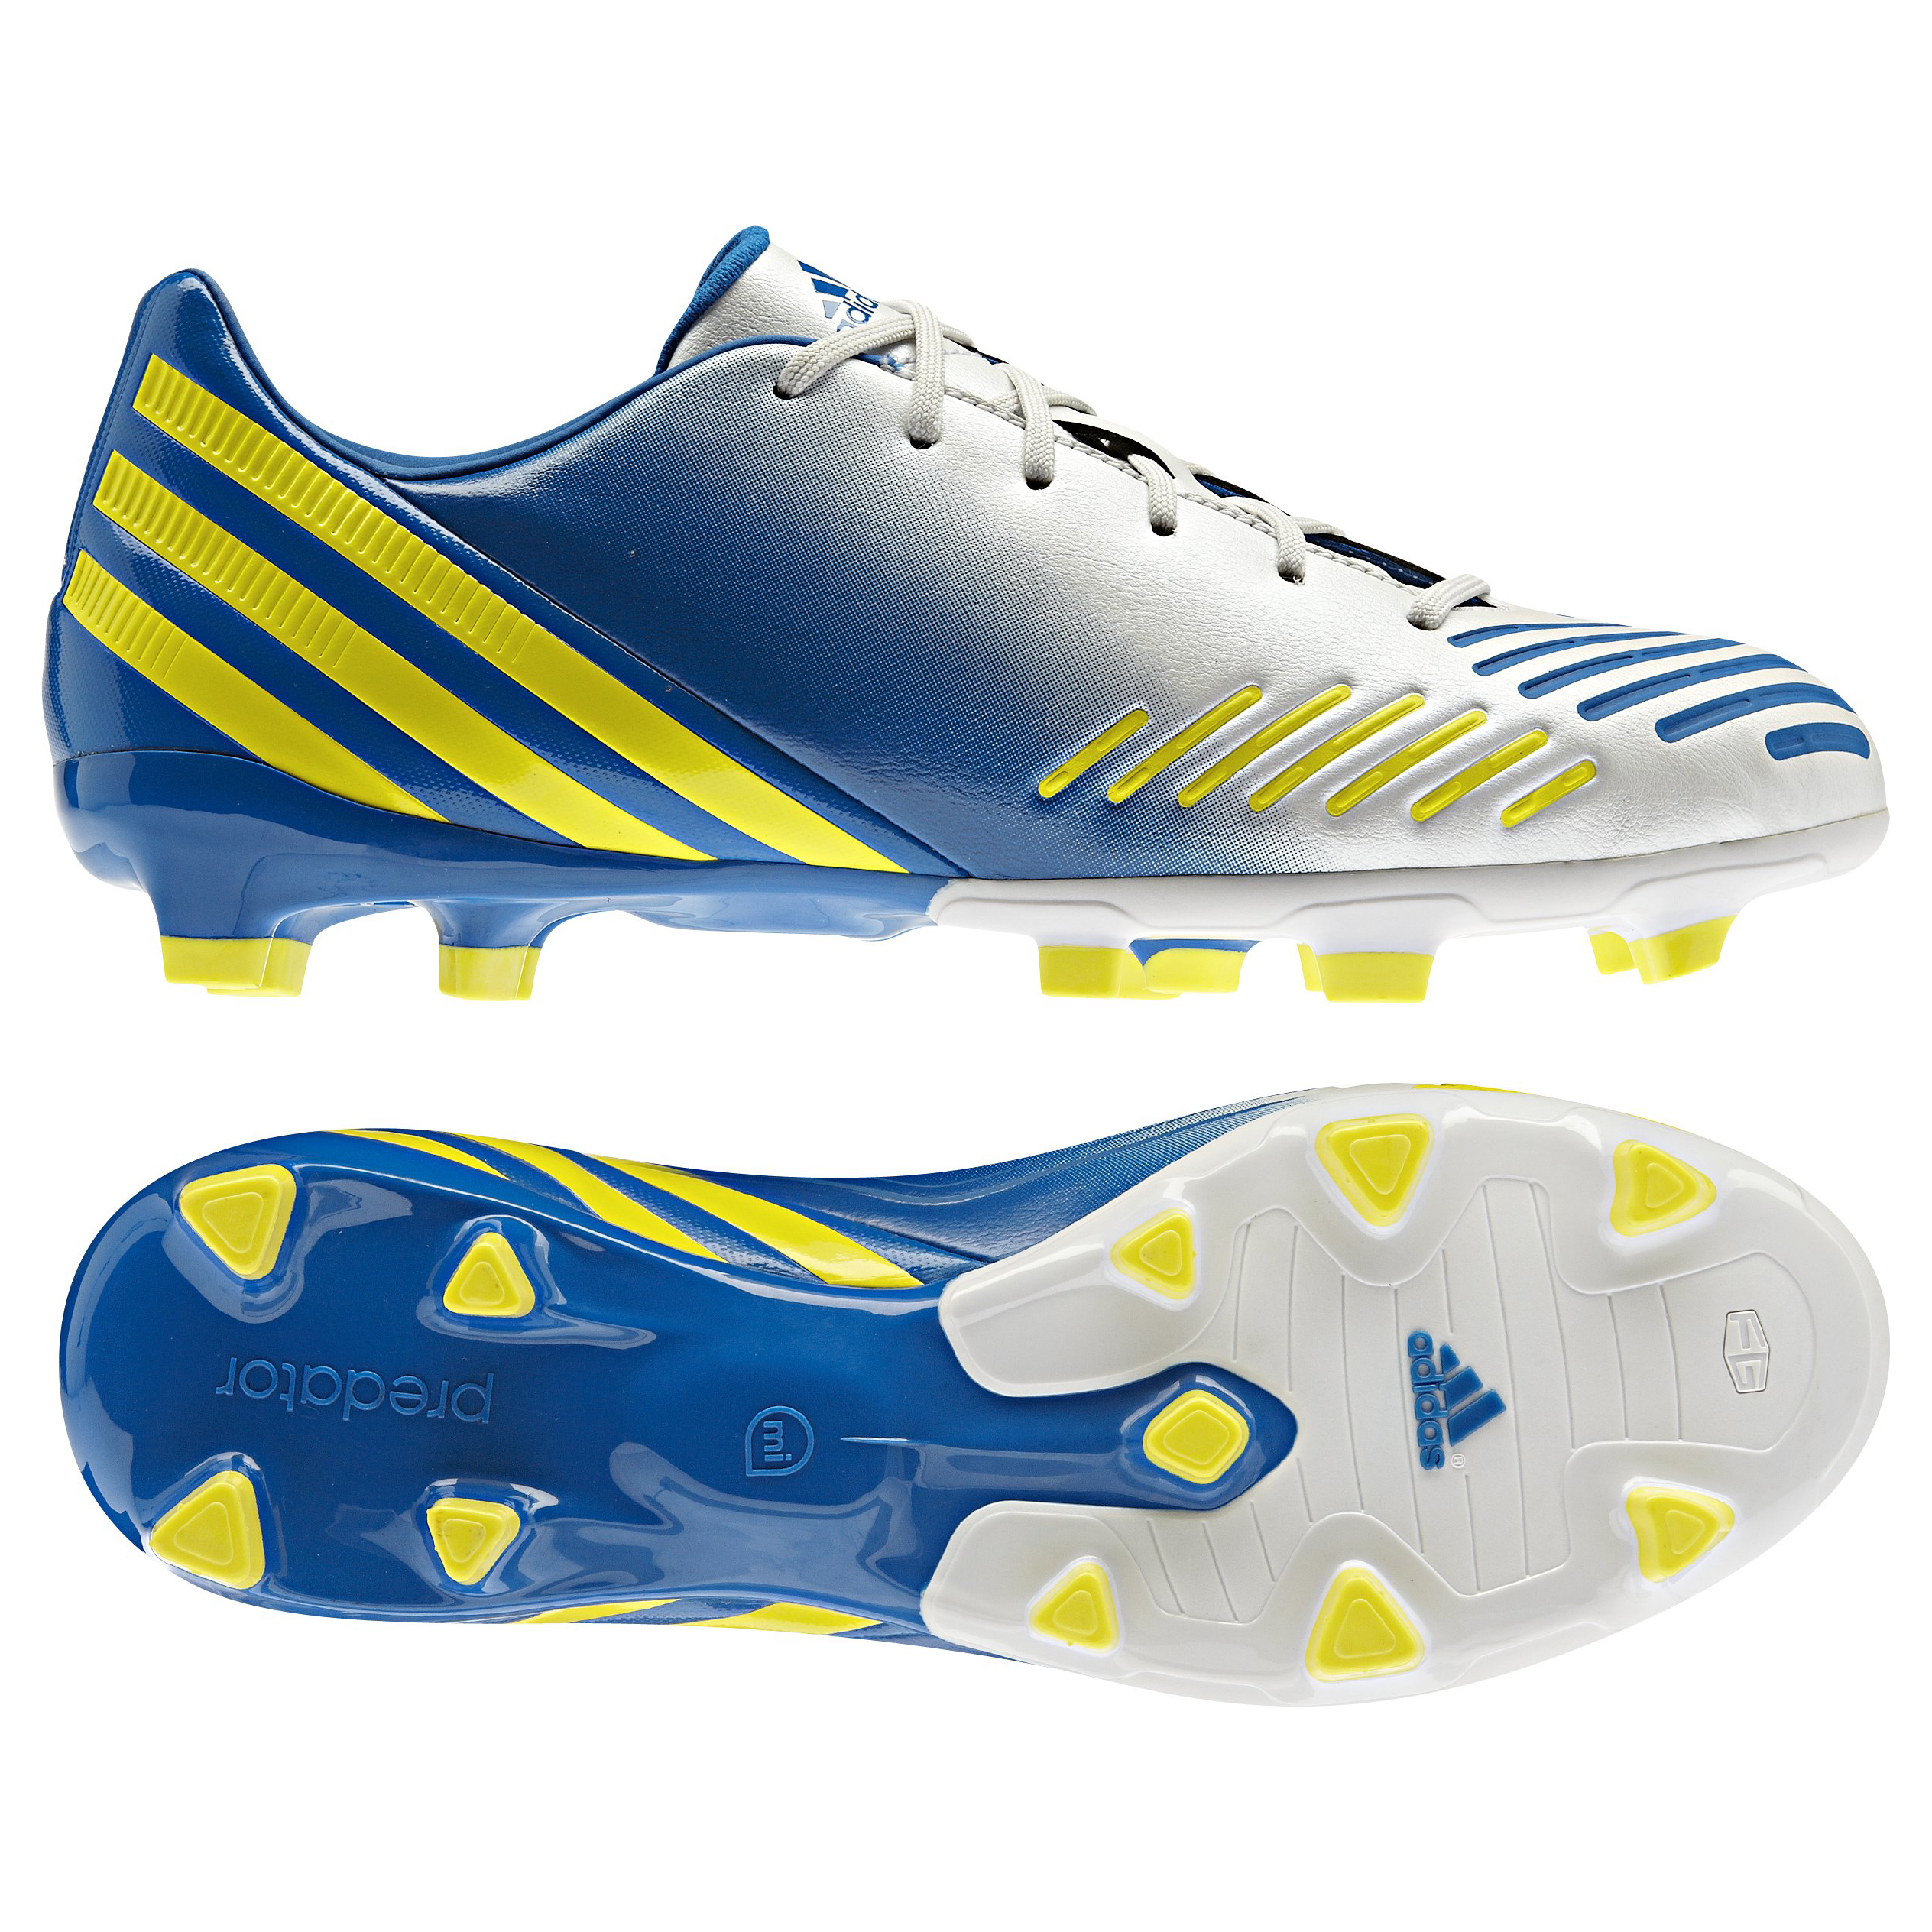 adidas Predator Absolado LZ TRX Firm Ground Football Boots - Running White/Vivid Yellow/Prime Blue